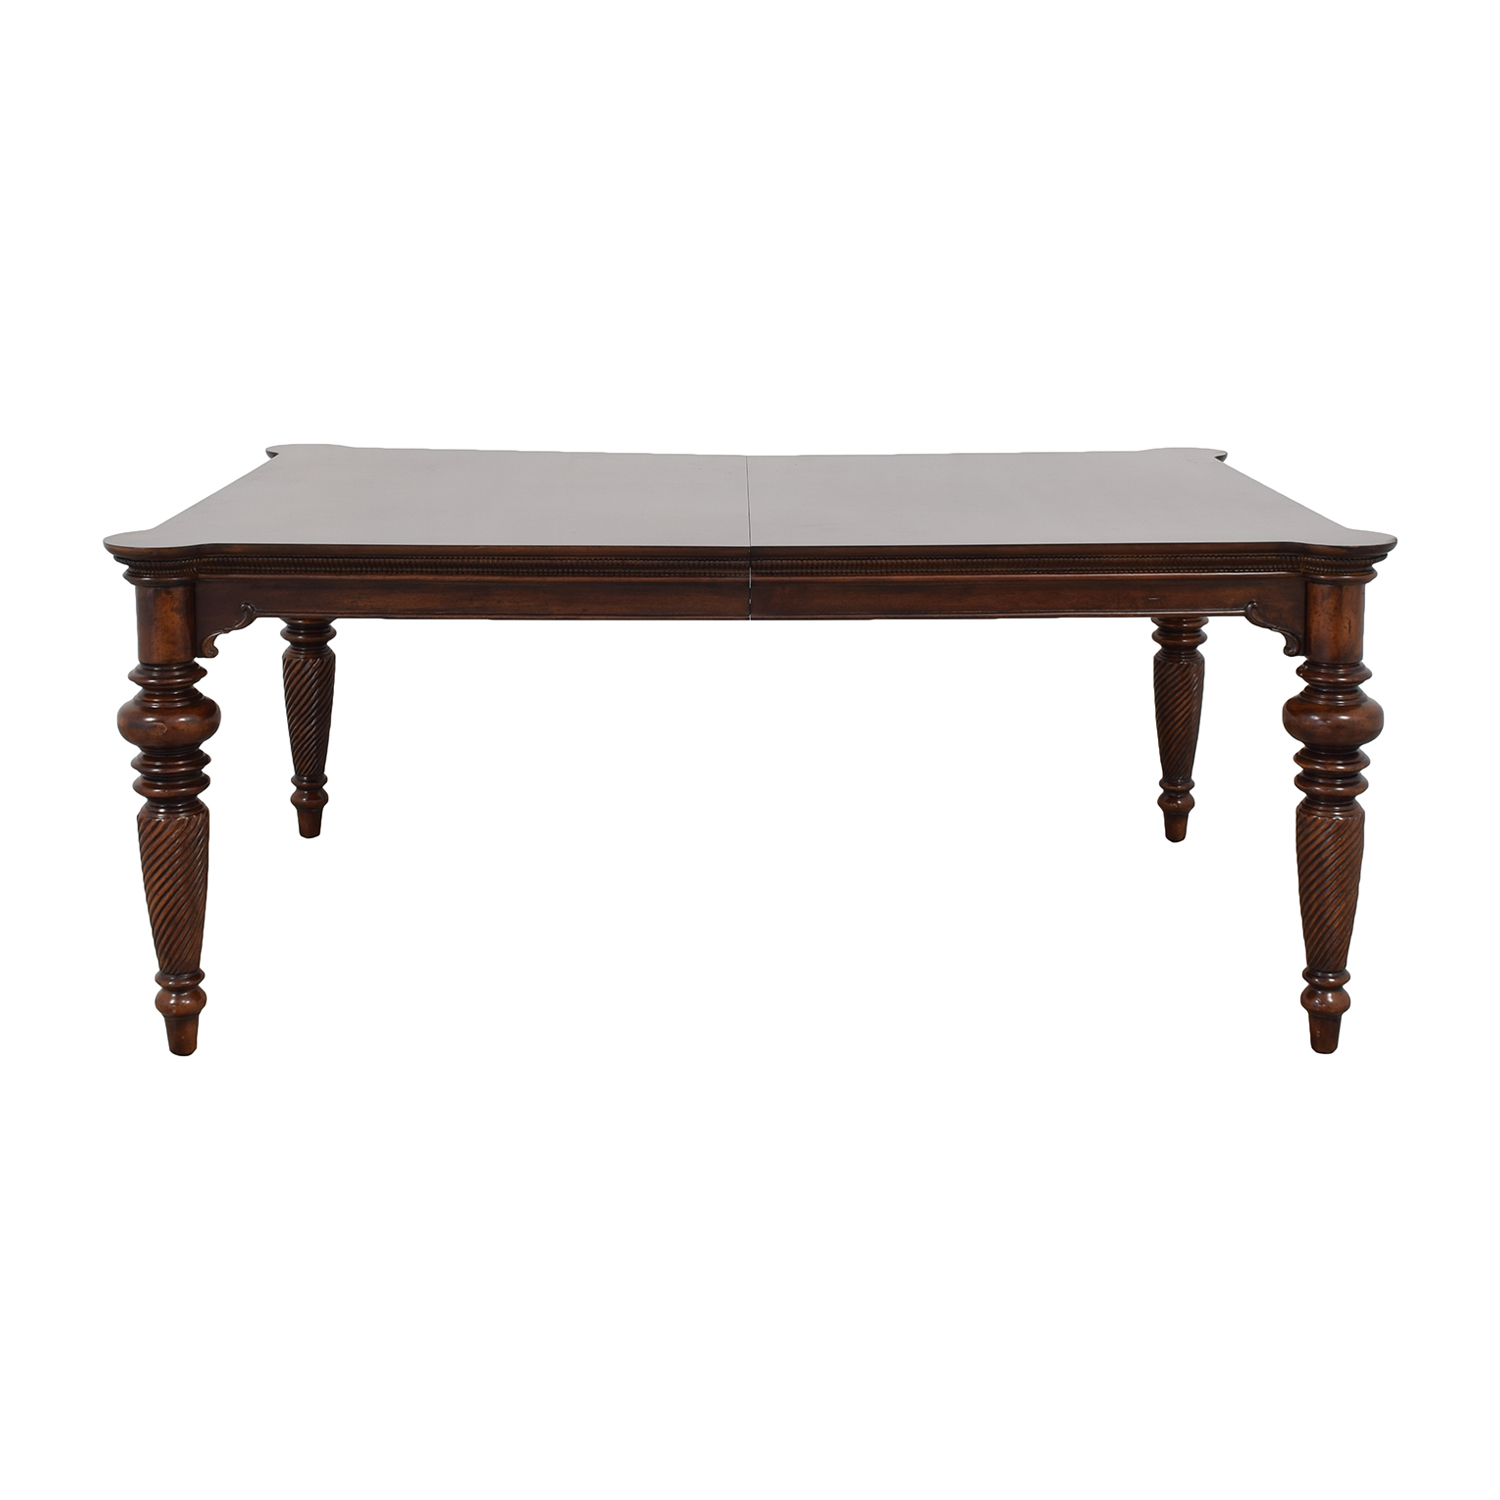 buy Bloomingdale's Dining Table Bloomingdale's Dinner Tables